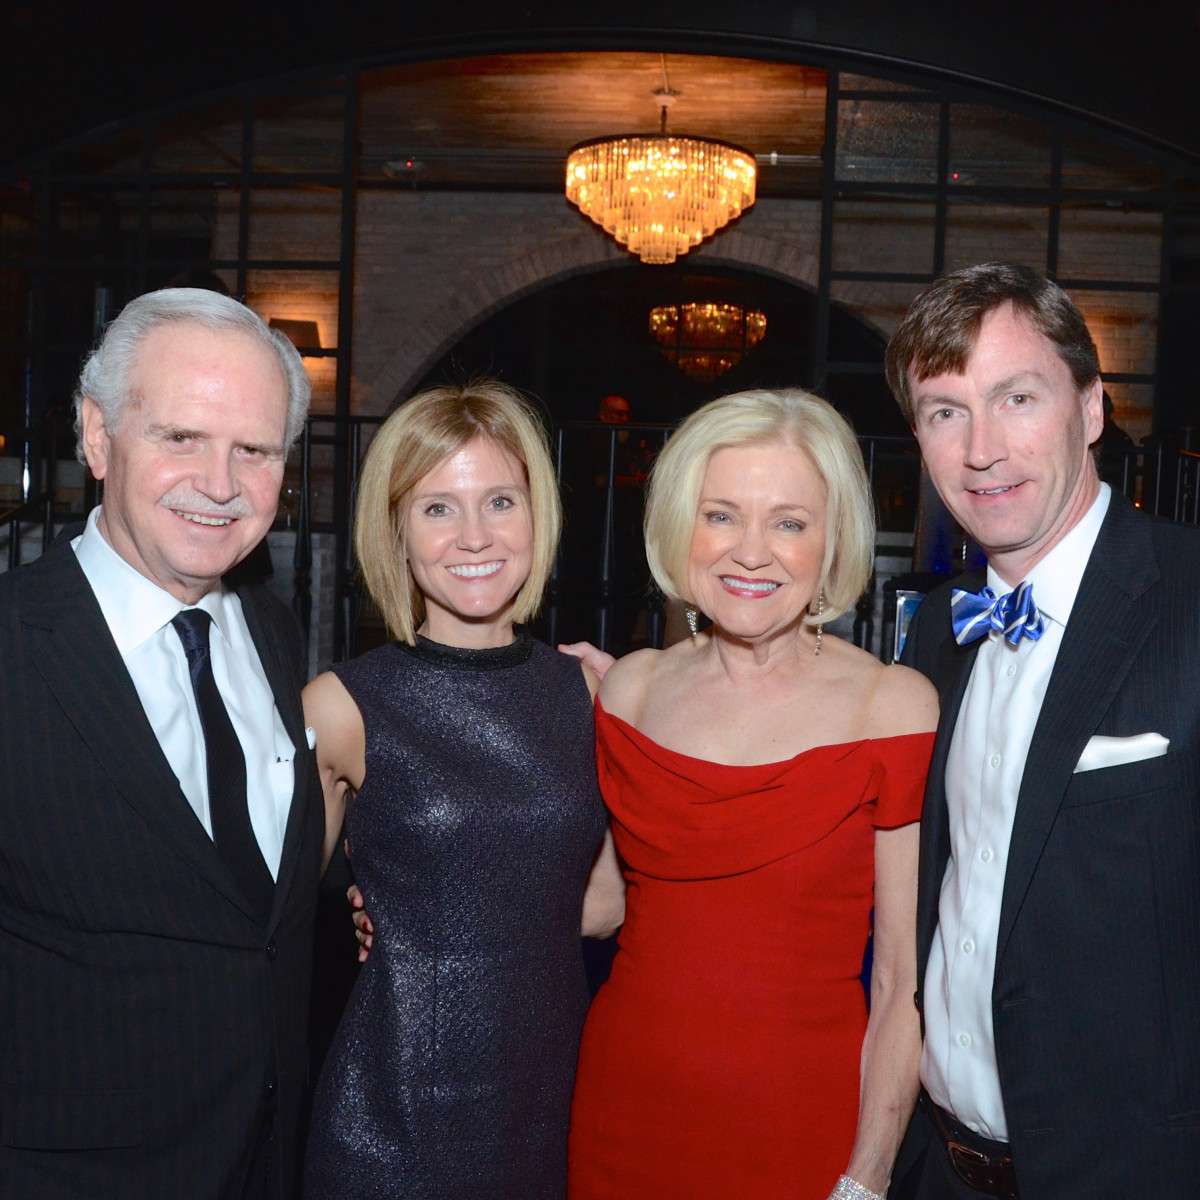 Underwriting Chairman Jim Furr, Erin Stimming, Underwriting Chairman Jo Furr, Chris Stimming at Stages Gala